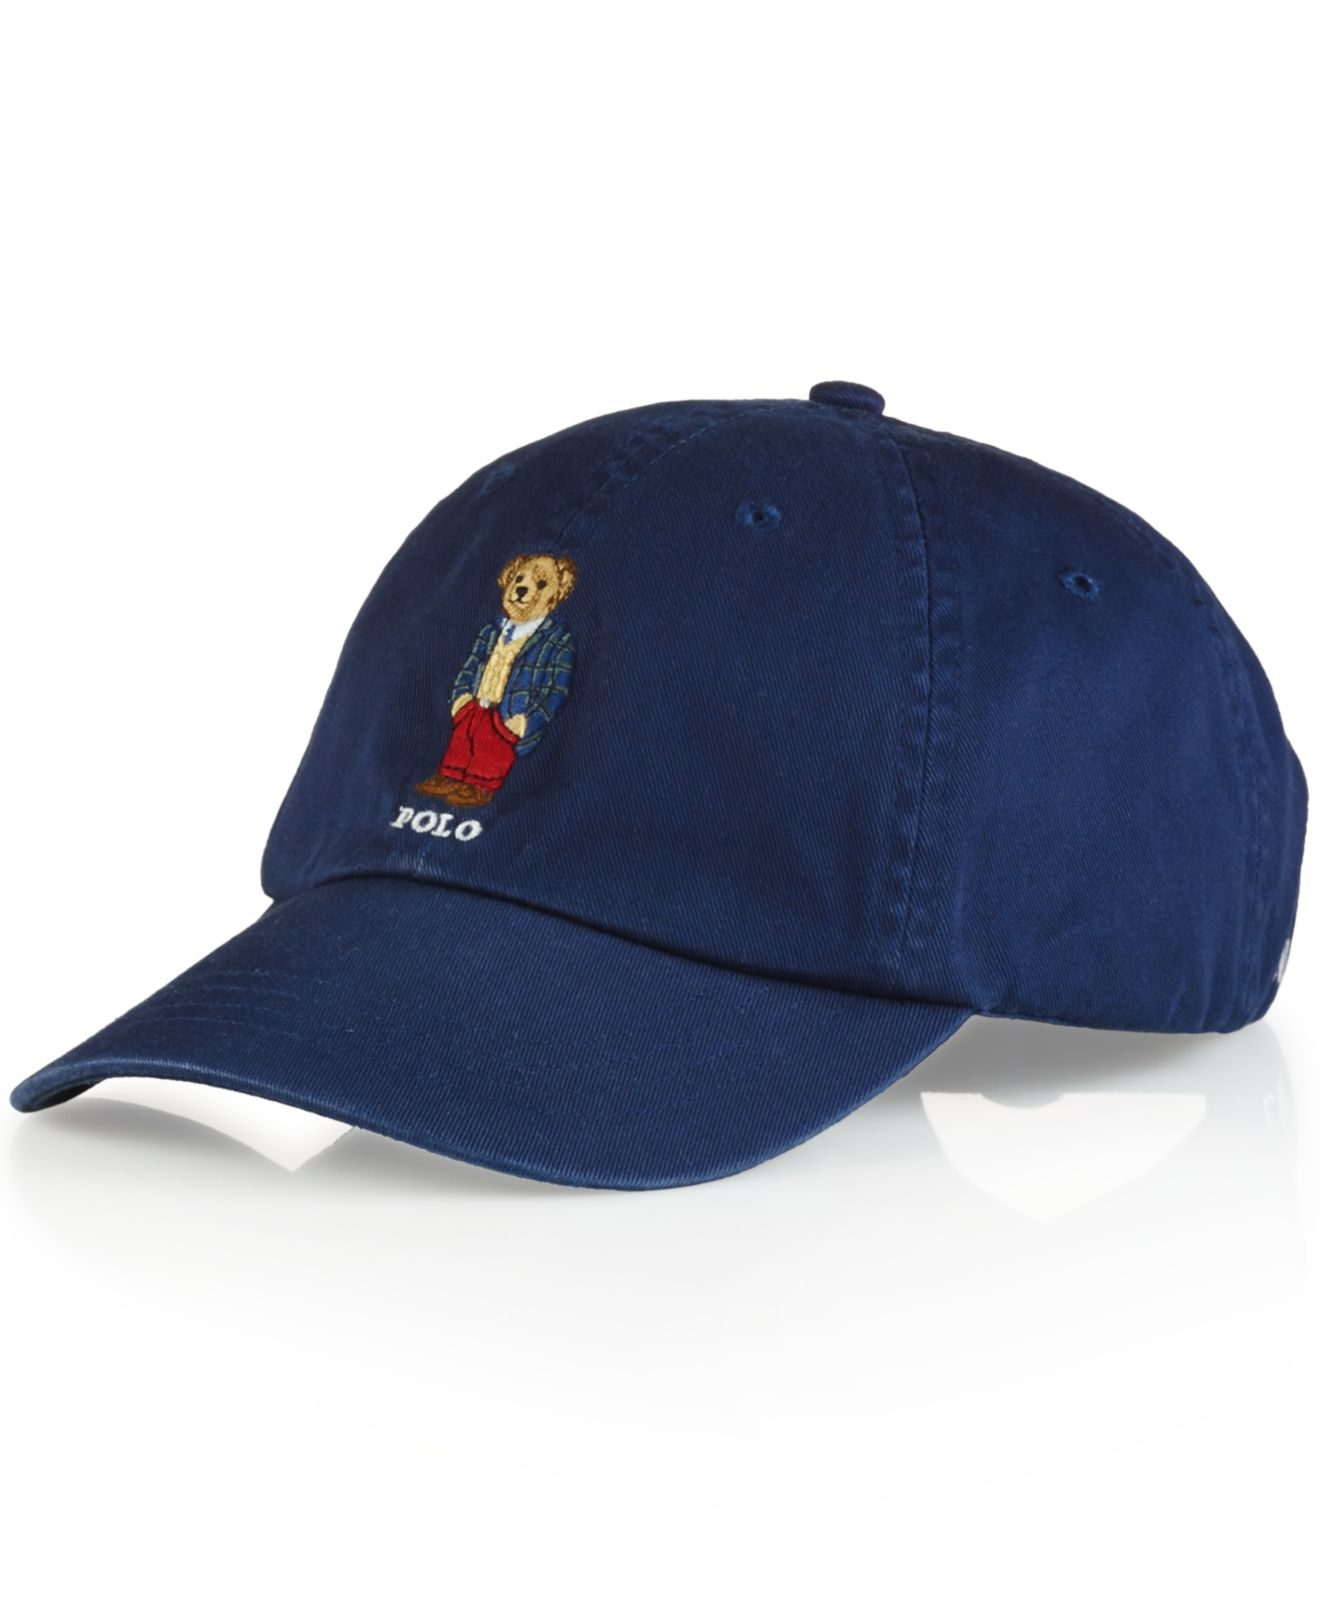 polo ralph lauren polo bear chino baseball cap preppy polo bear in blue for men lyst. Black Bedroom Furniture Sets. Home Design Ideas